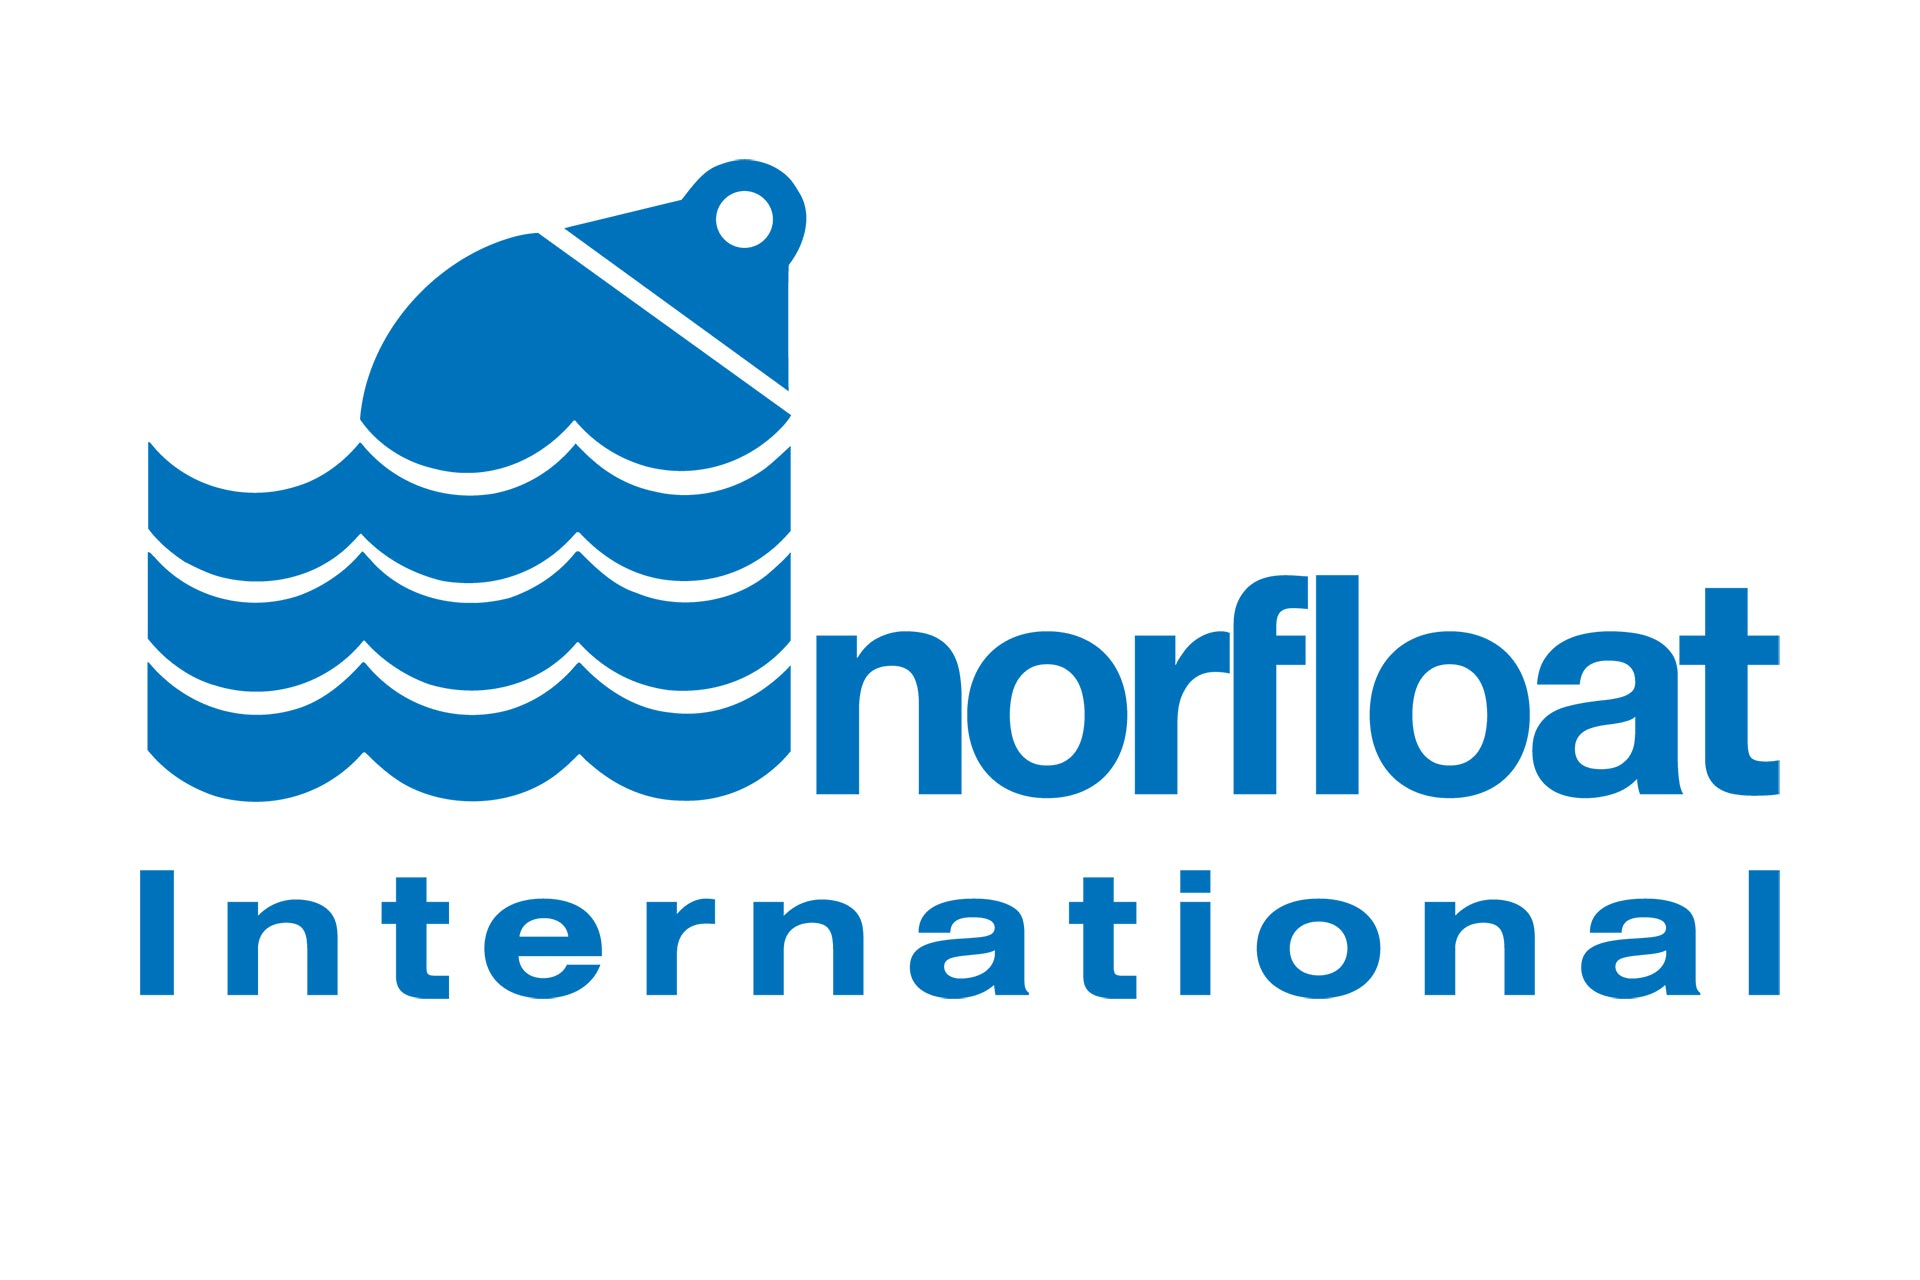 norfloat 1920 opt